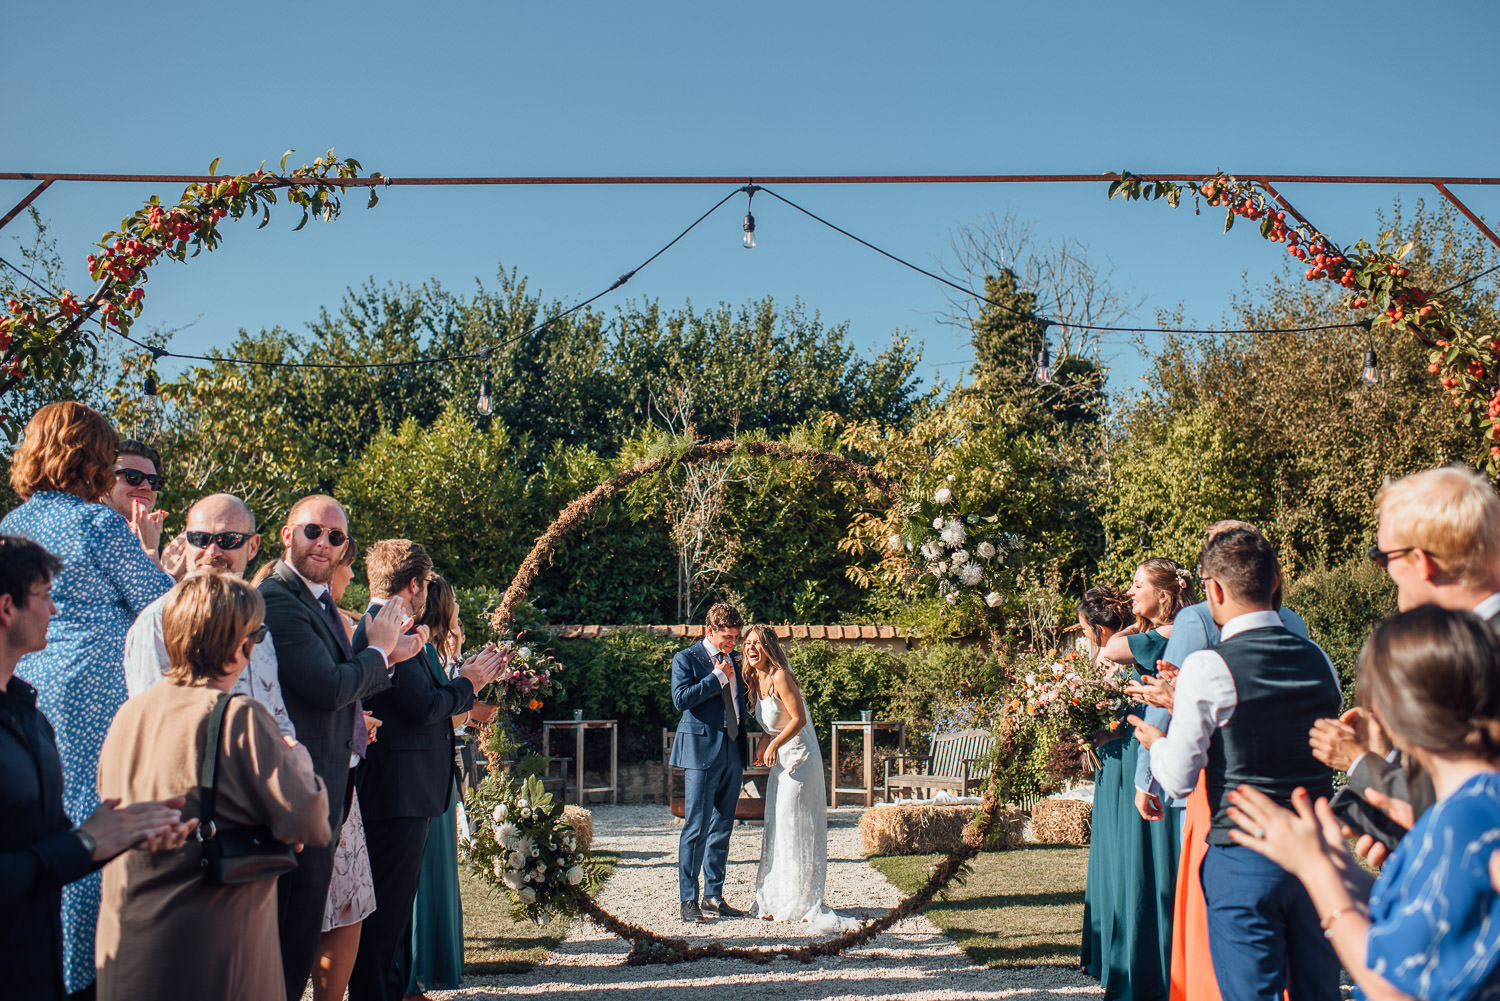 floral moon gate in oxleaze barn wedding